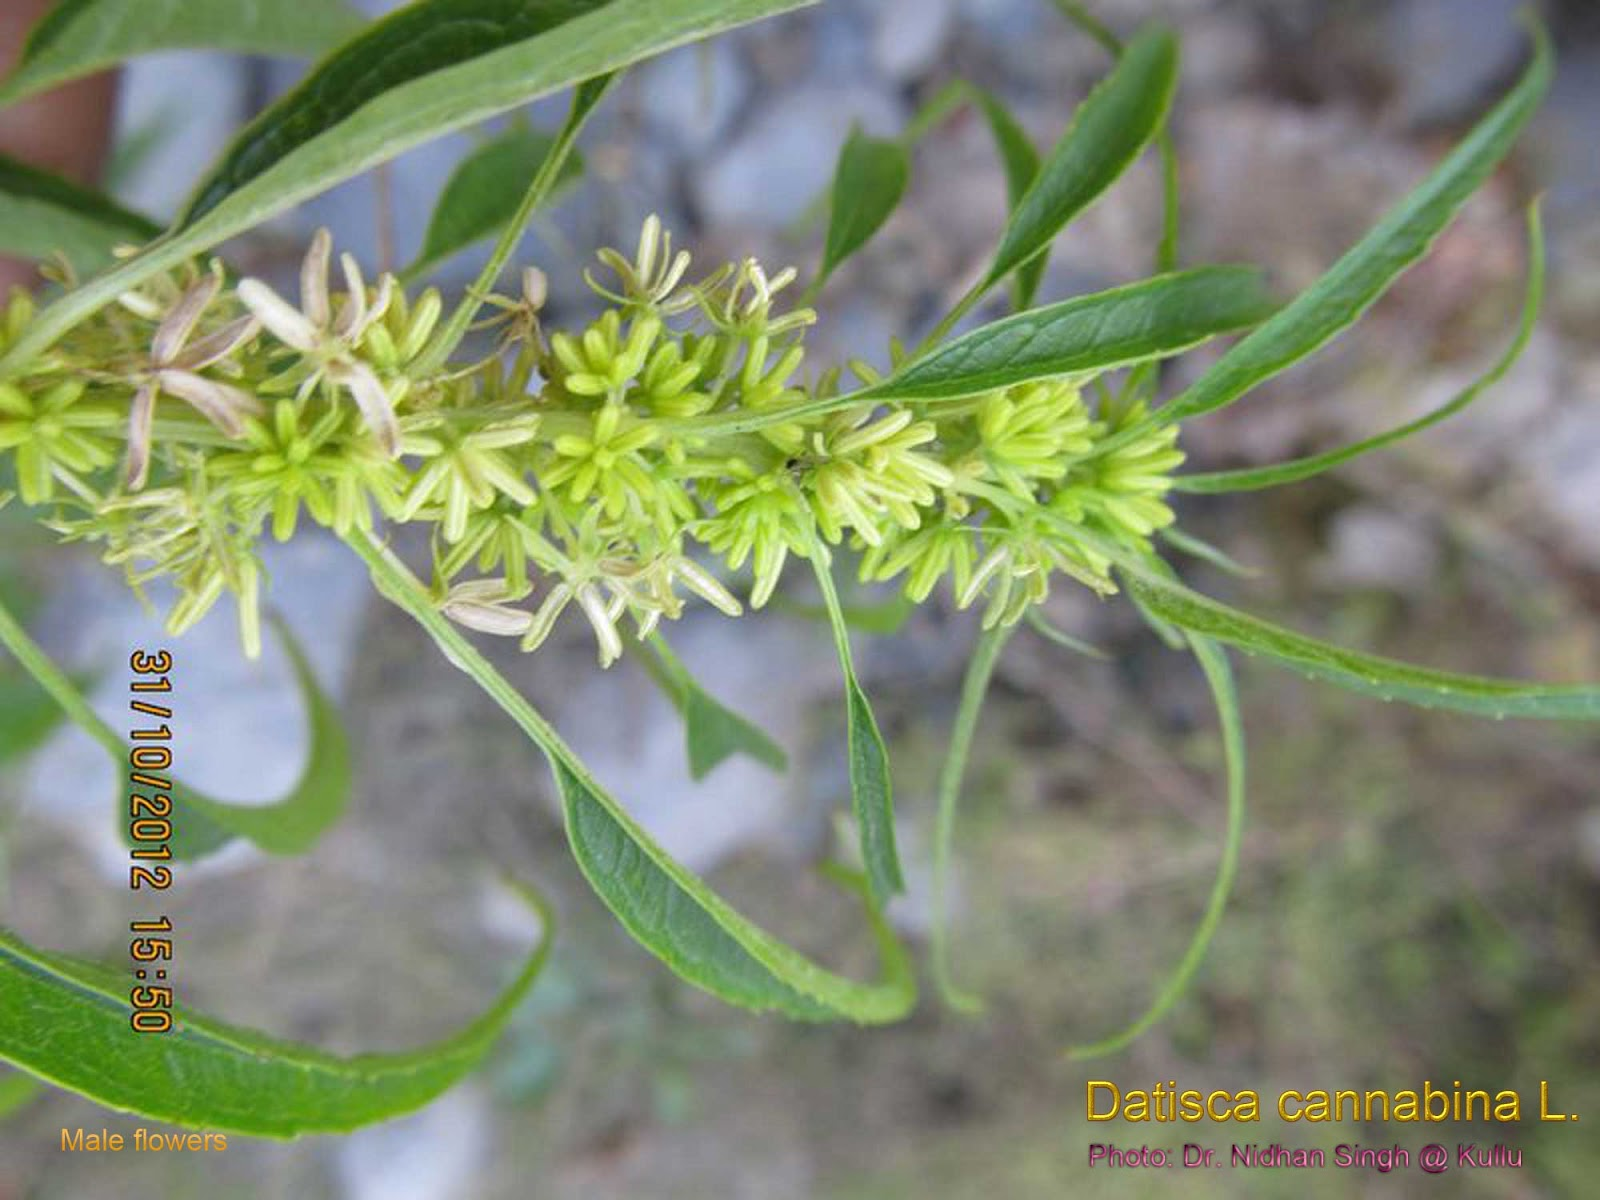 Datisca-cannabina-False-Hemp-Acalbir-Male-flower.jpg